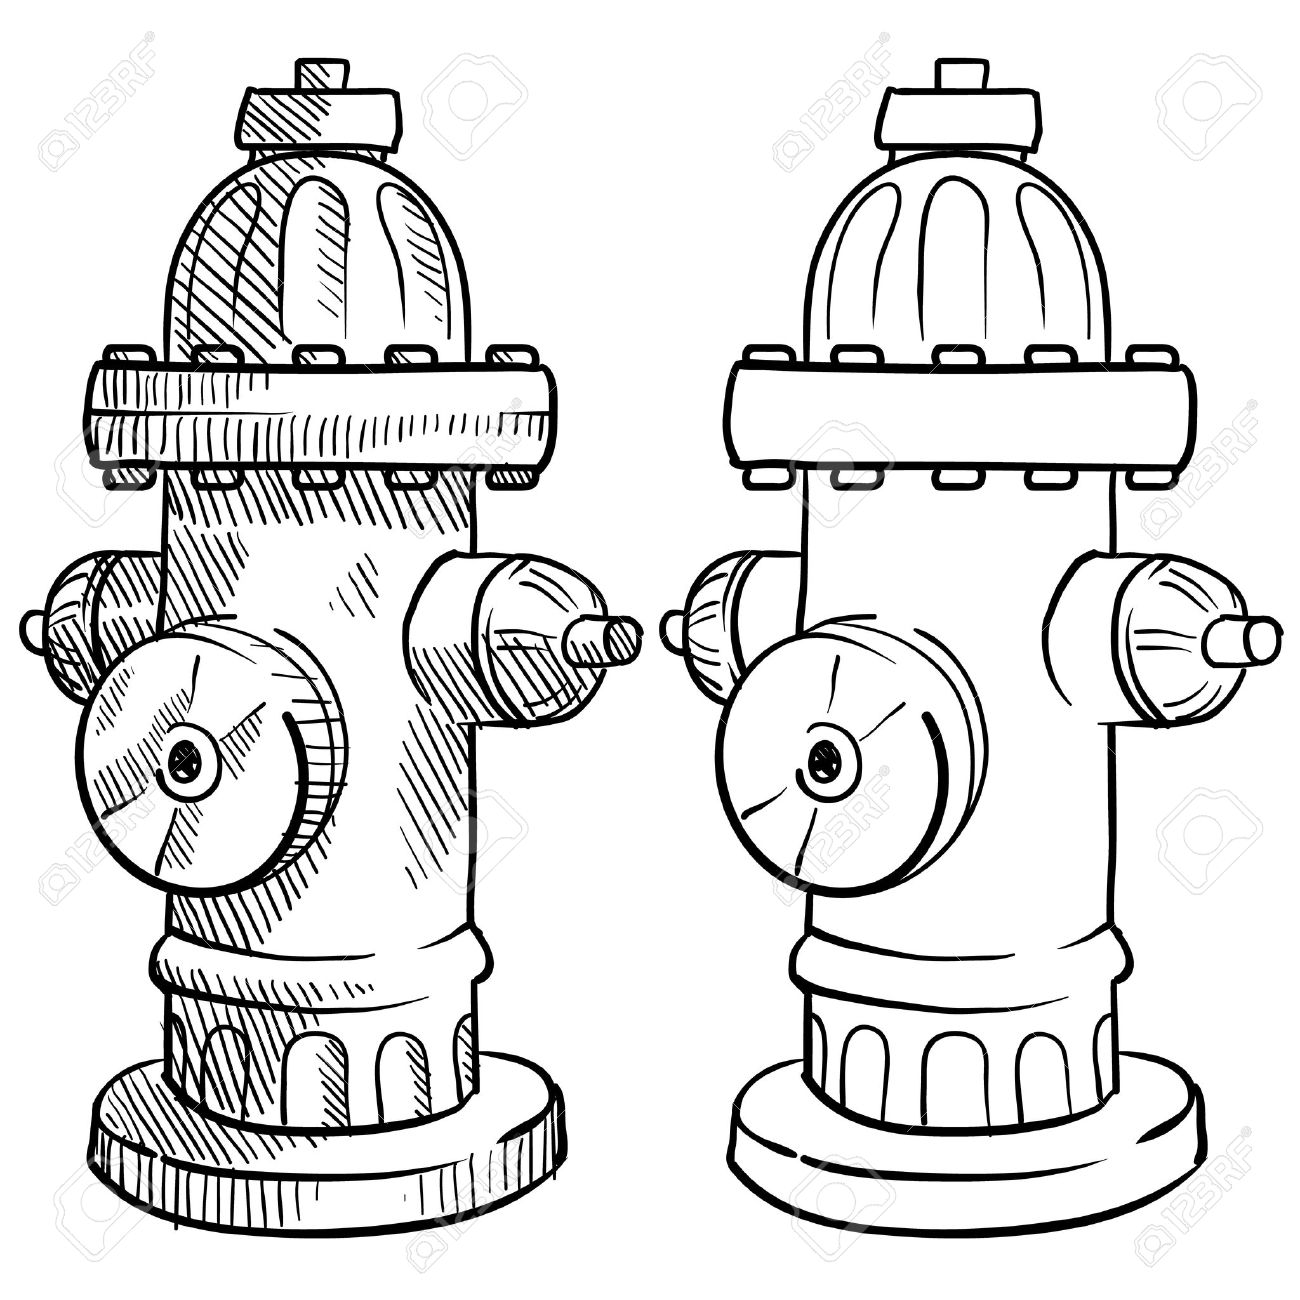 Doodle style fire hydrant illustration Stock Vector - 13258762